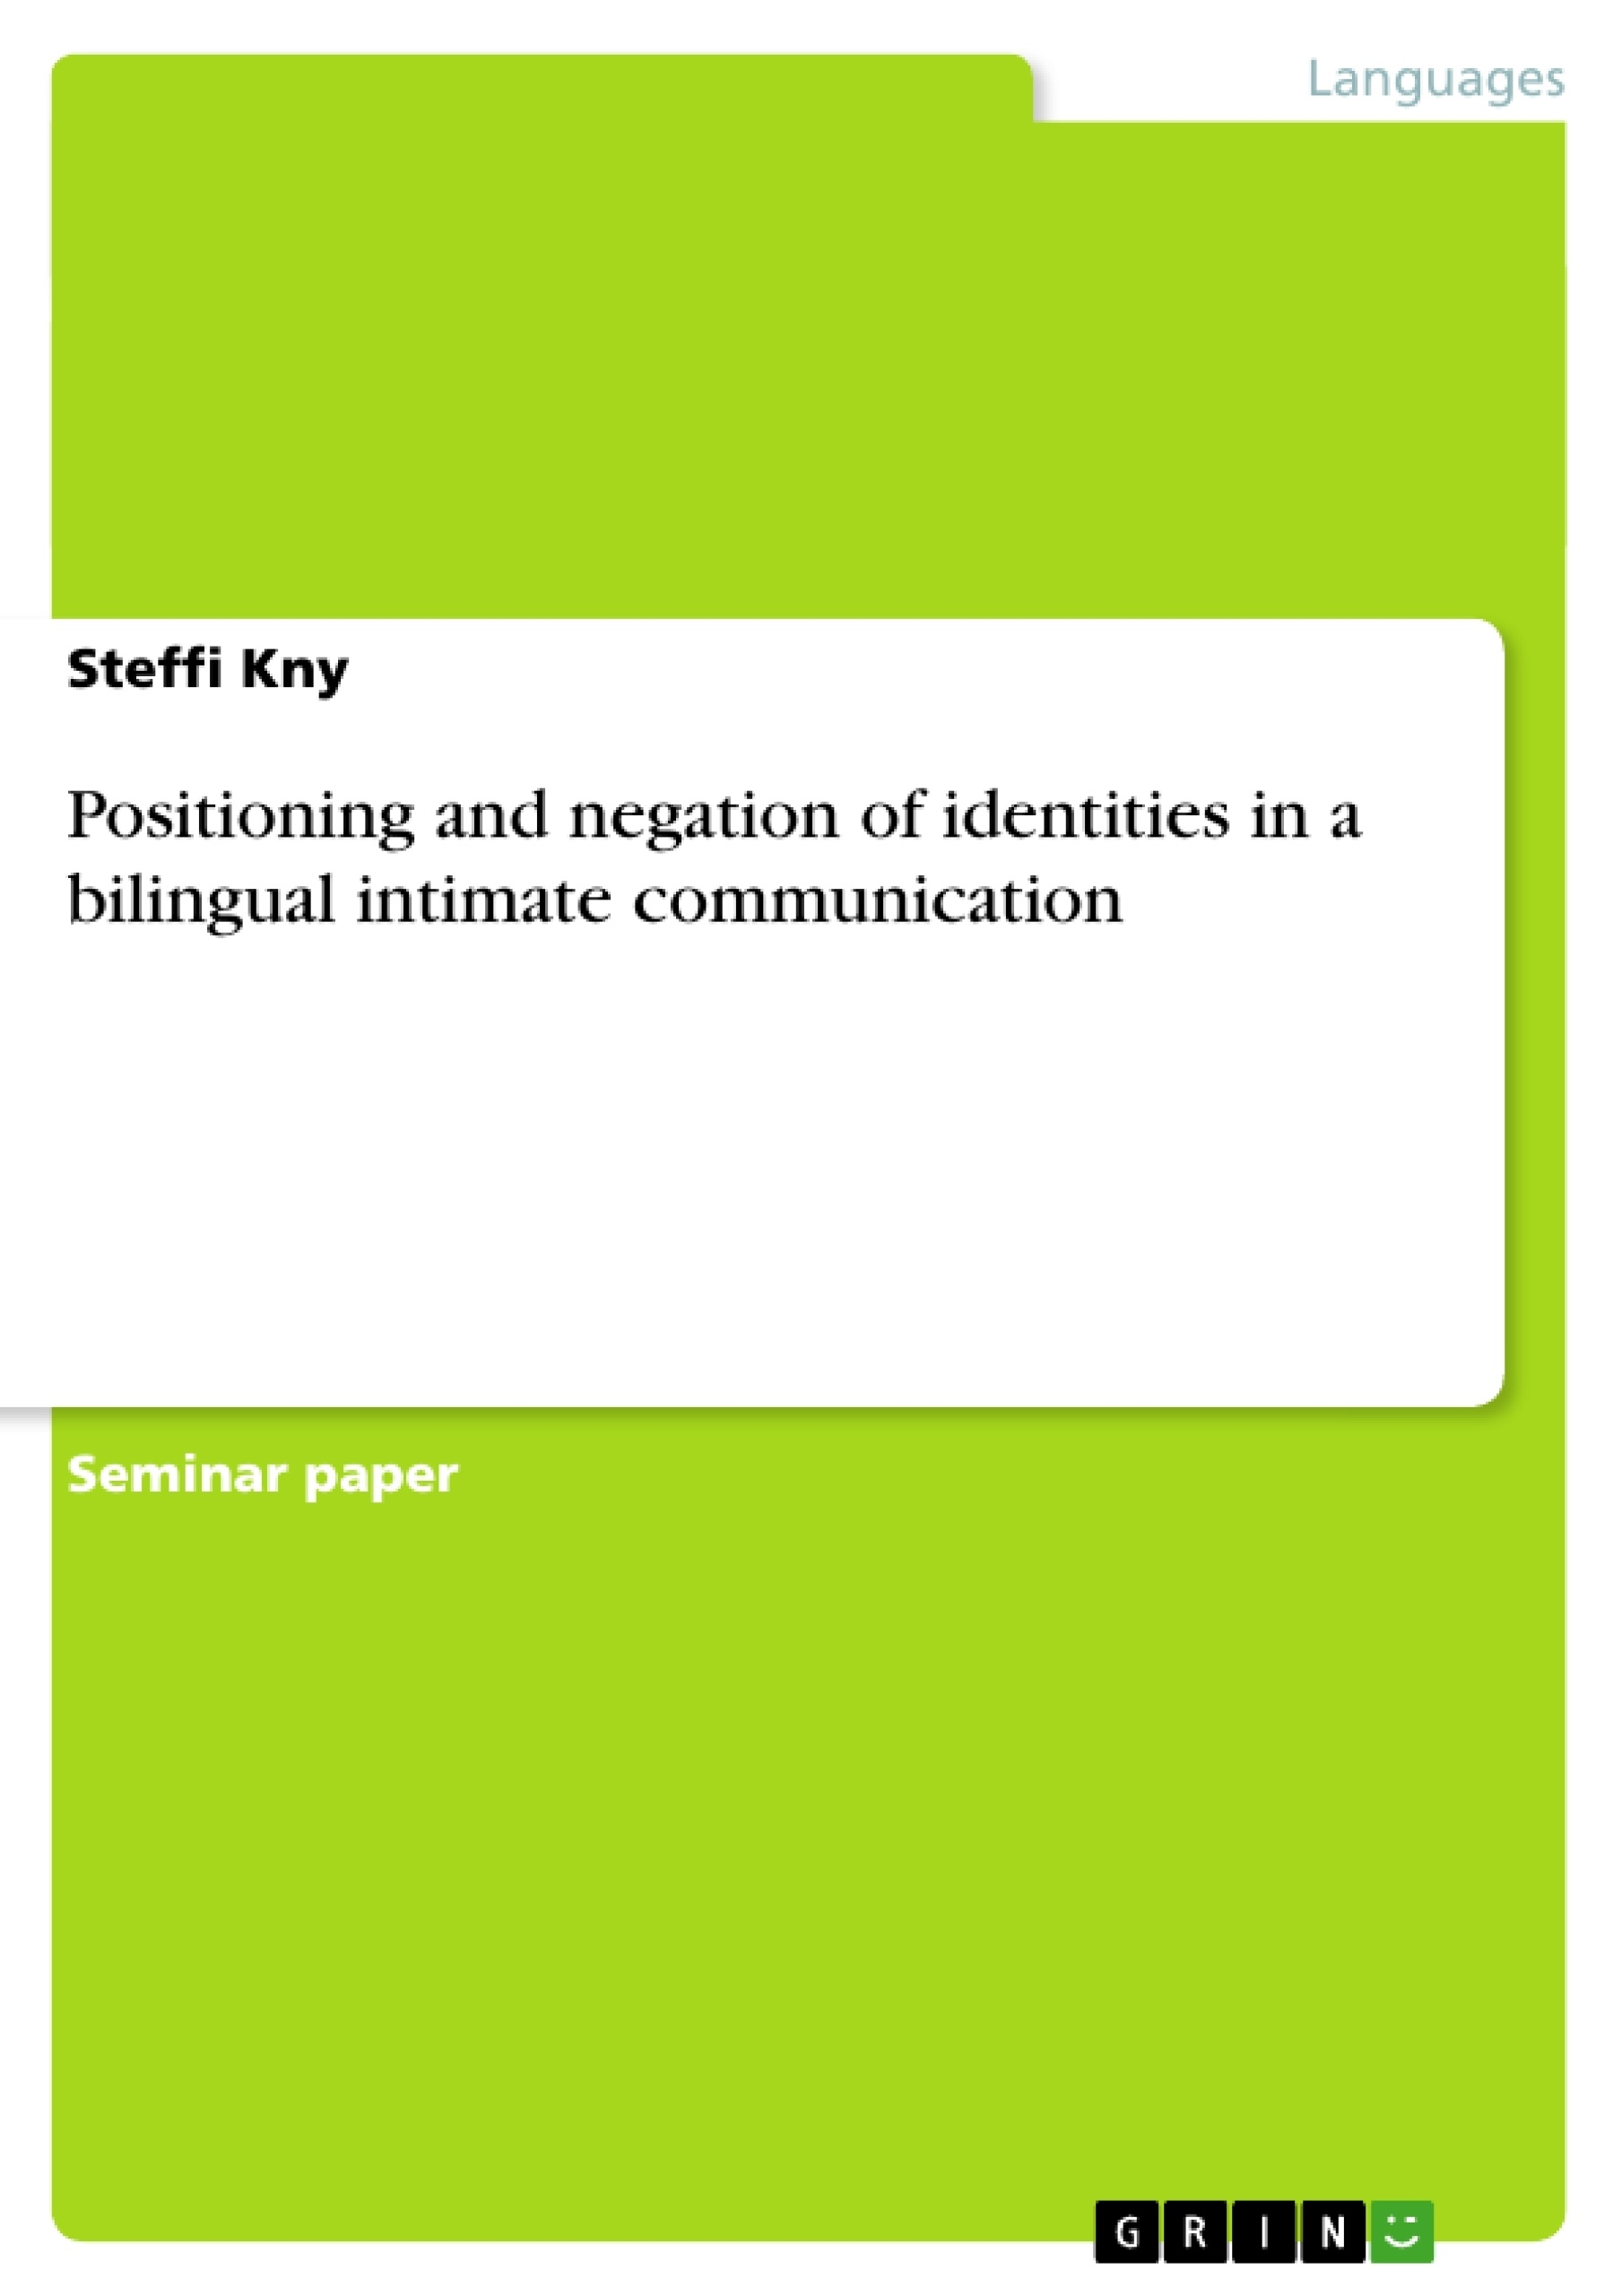 Title: Positioning and negation of identities in a bilingual intimate communication